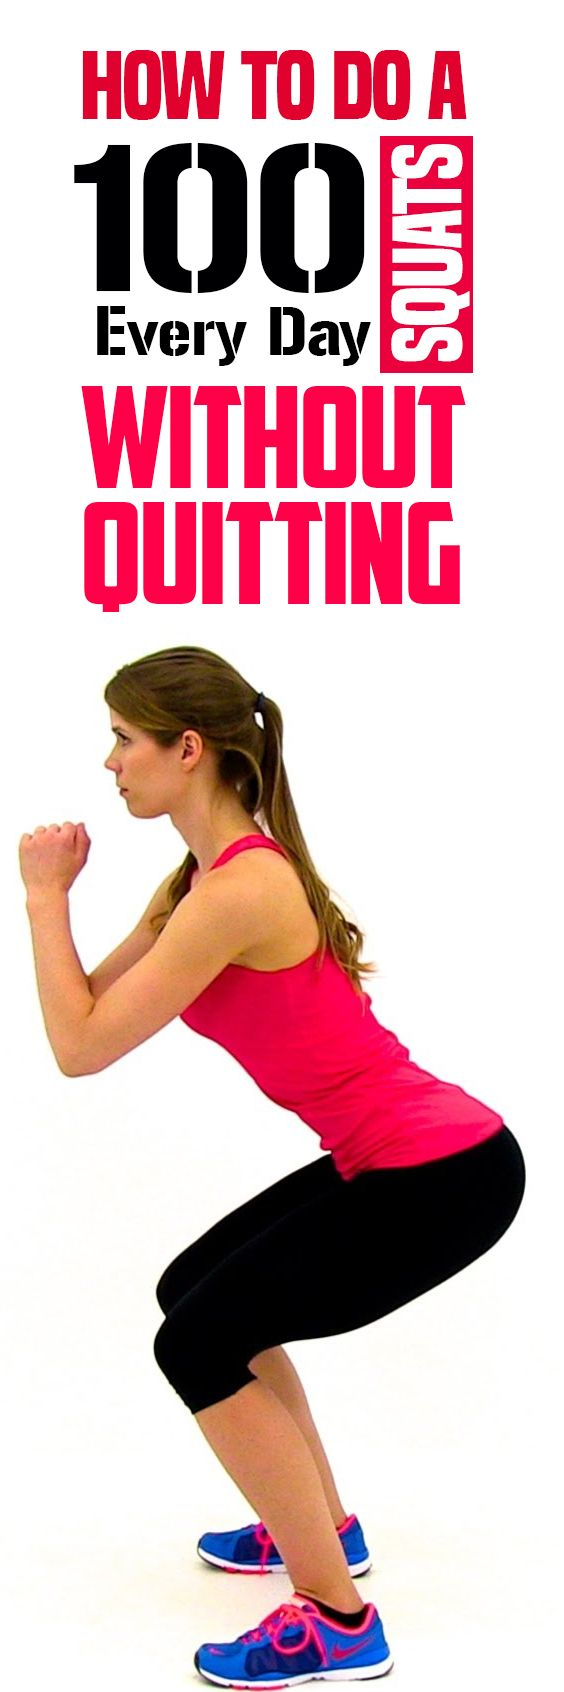 How to Do a 100 Squats Every Day Without Quitting